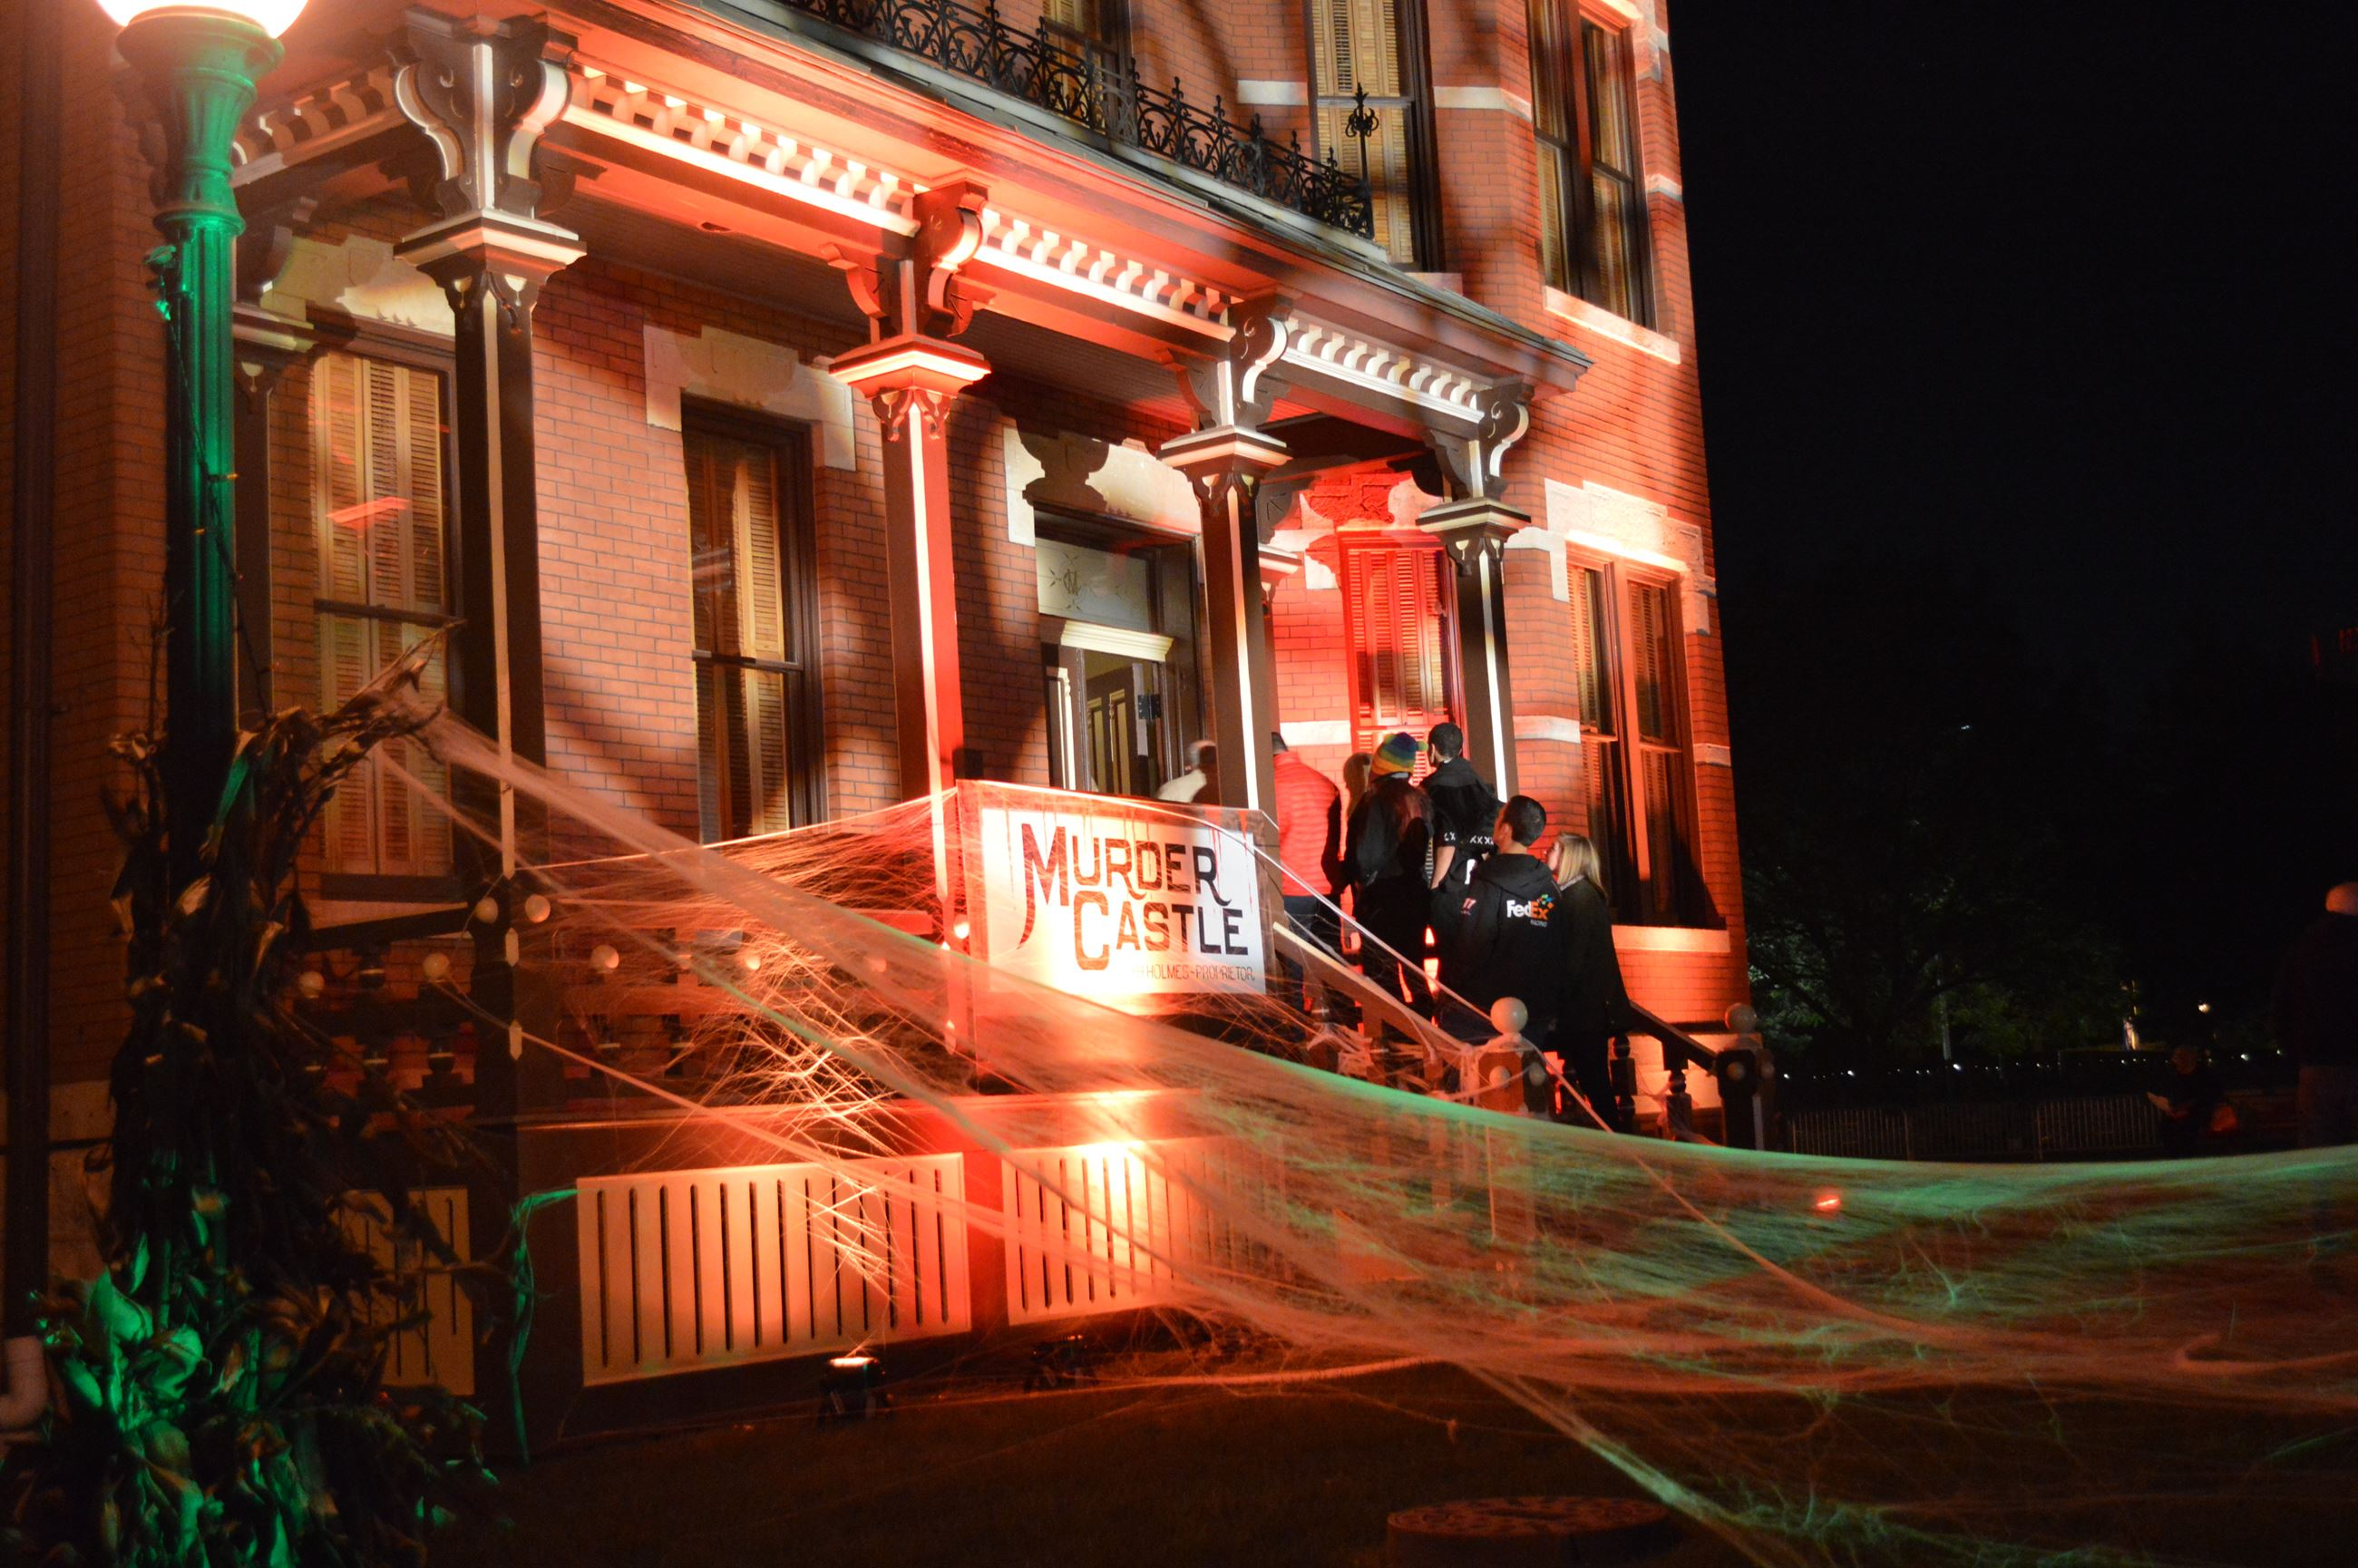 All Hallows Eve Martin Mitchell Mansion